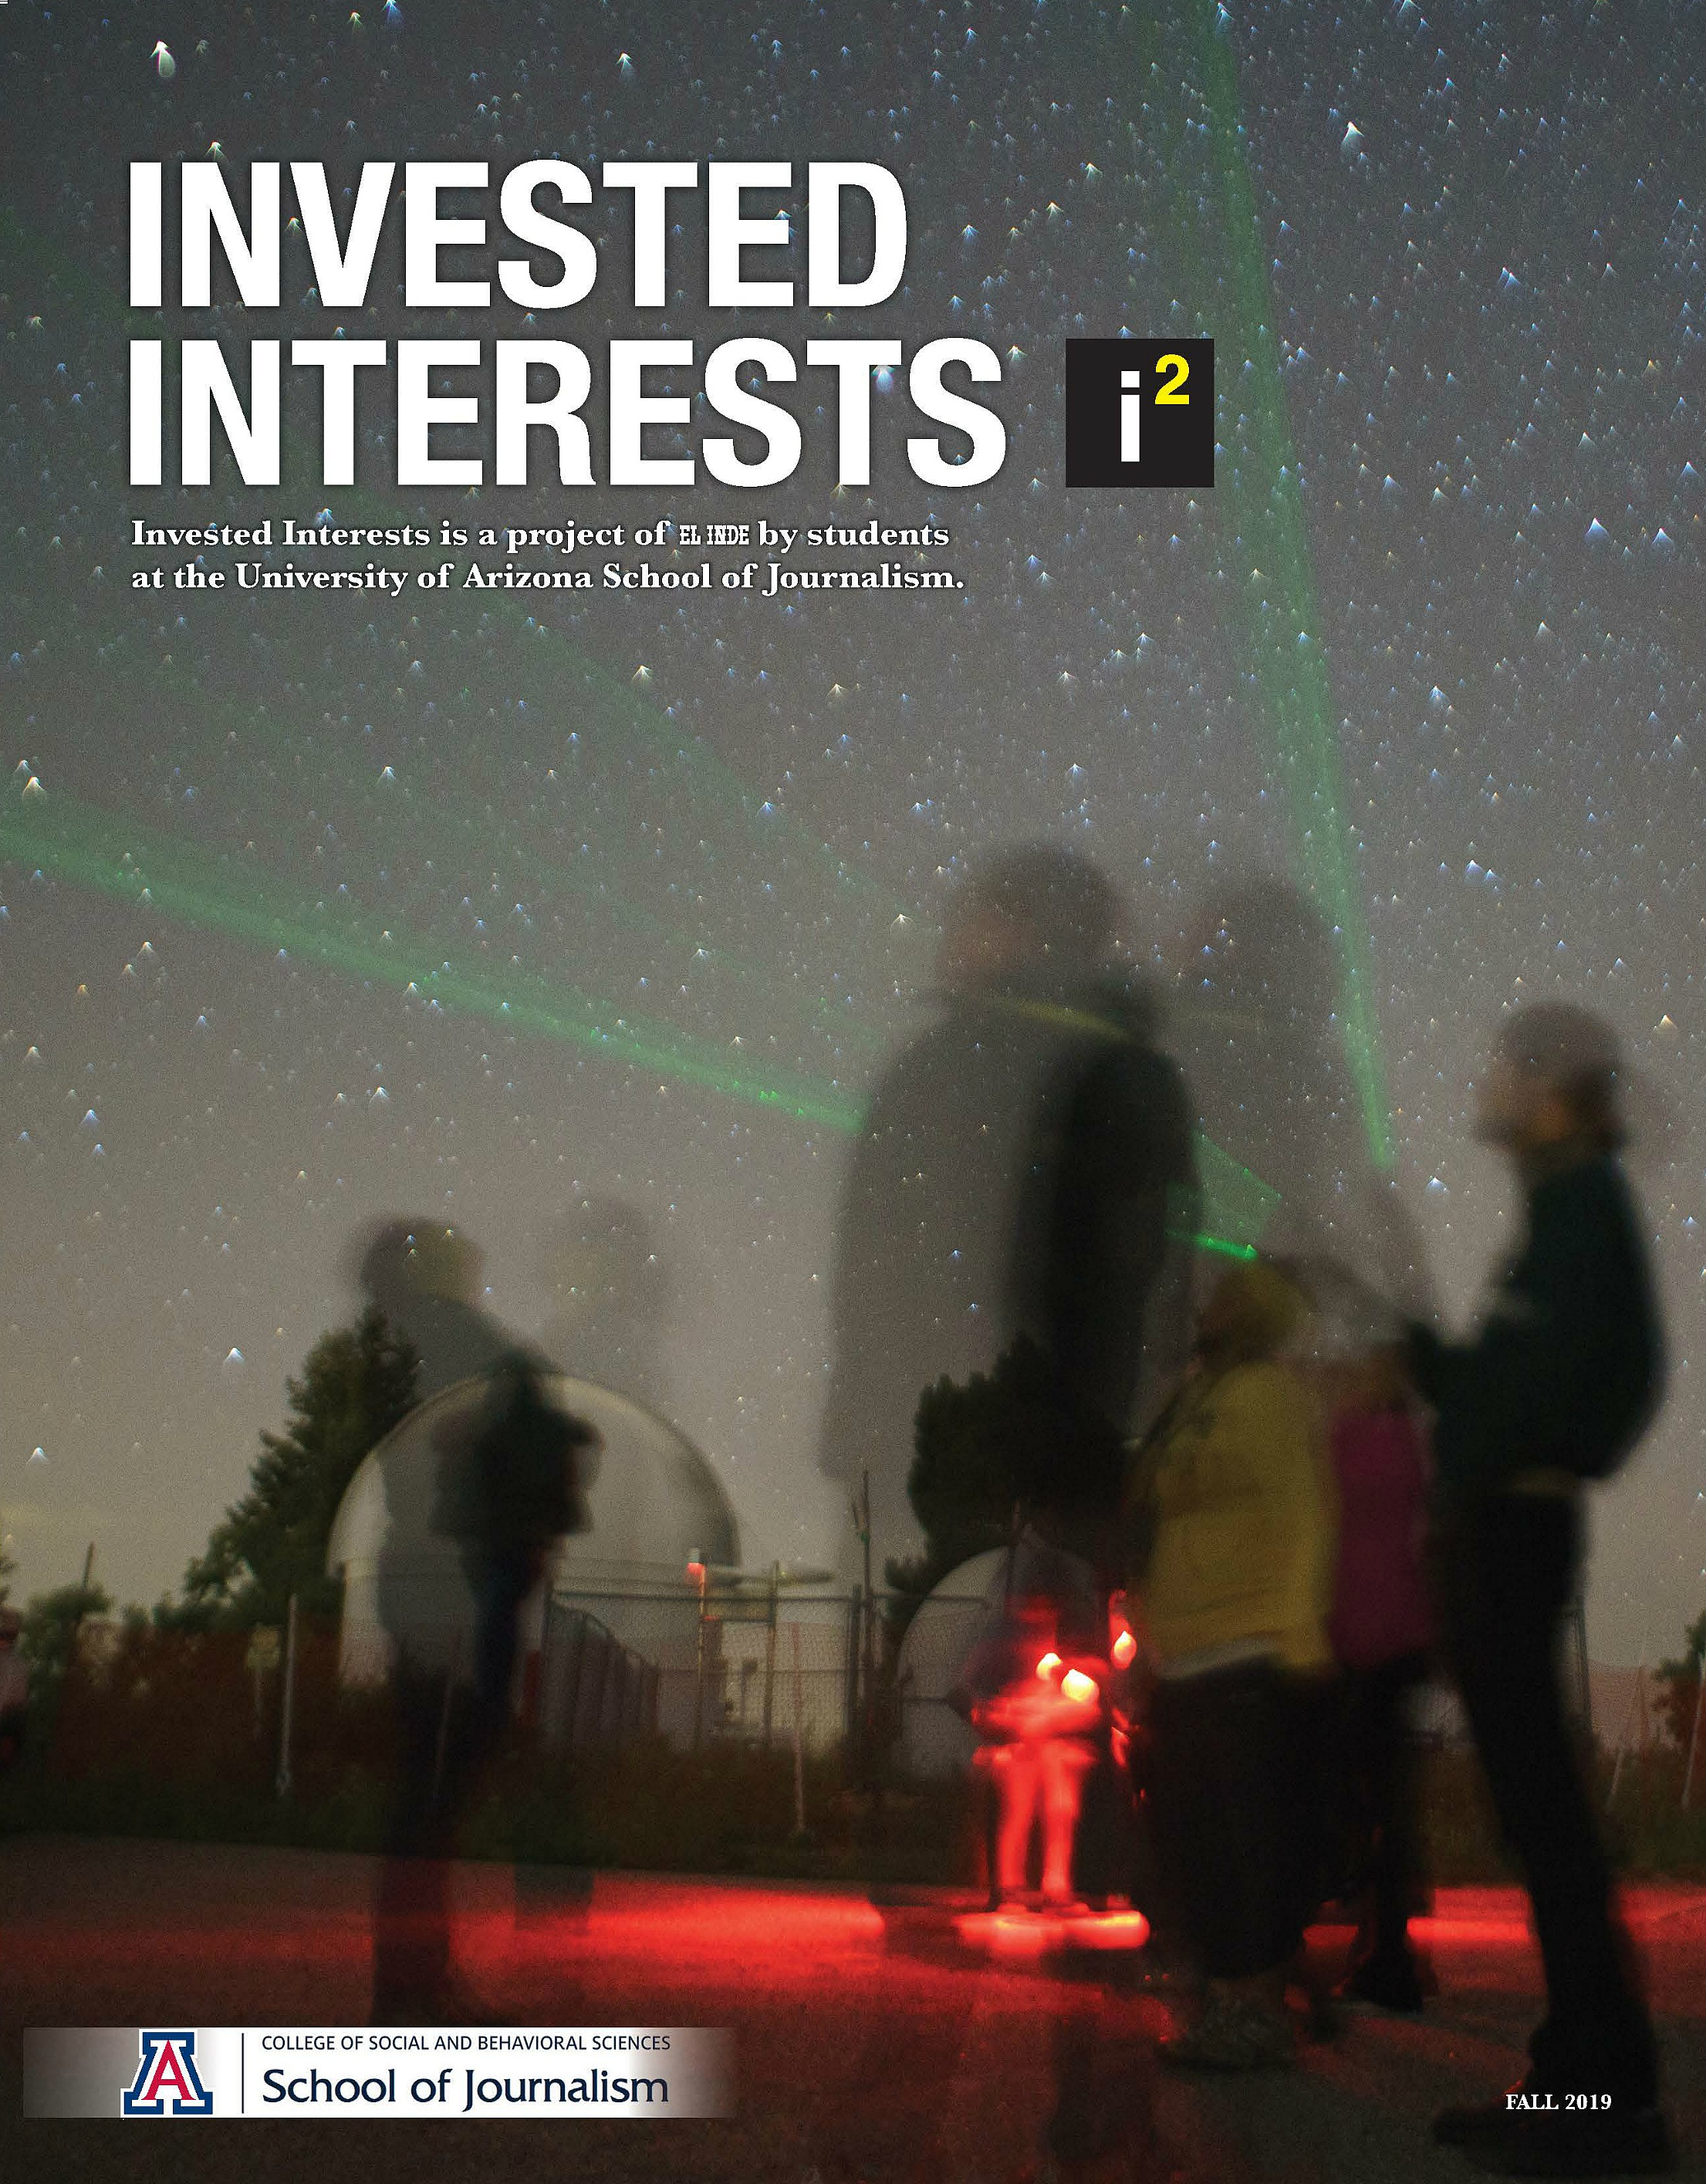 Invested Interests magazine cover